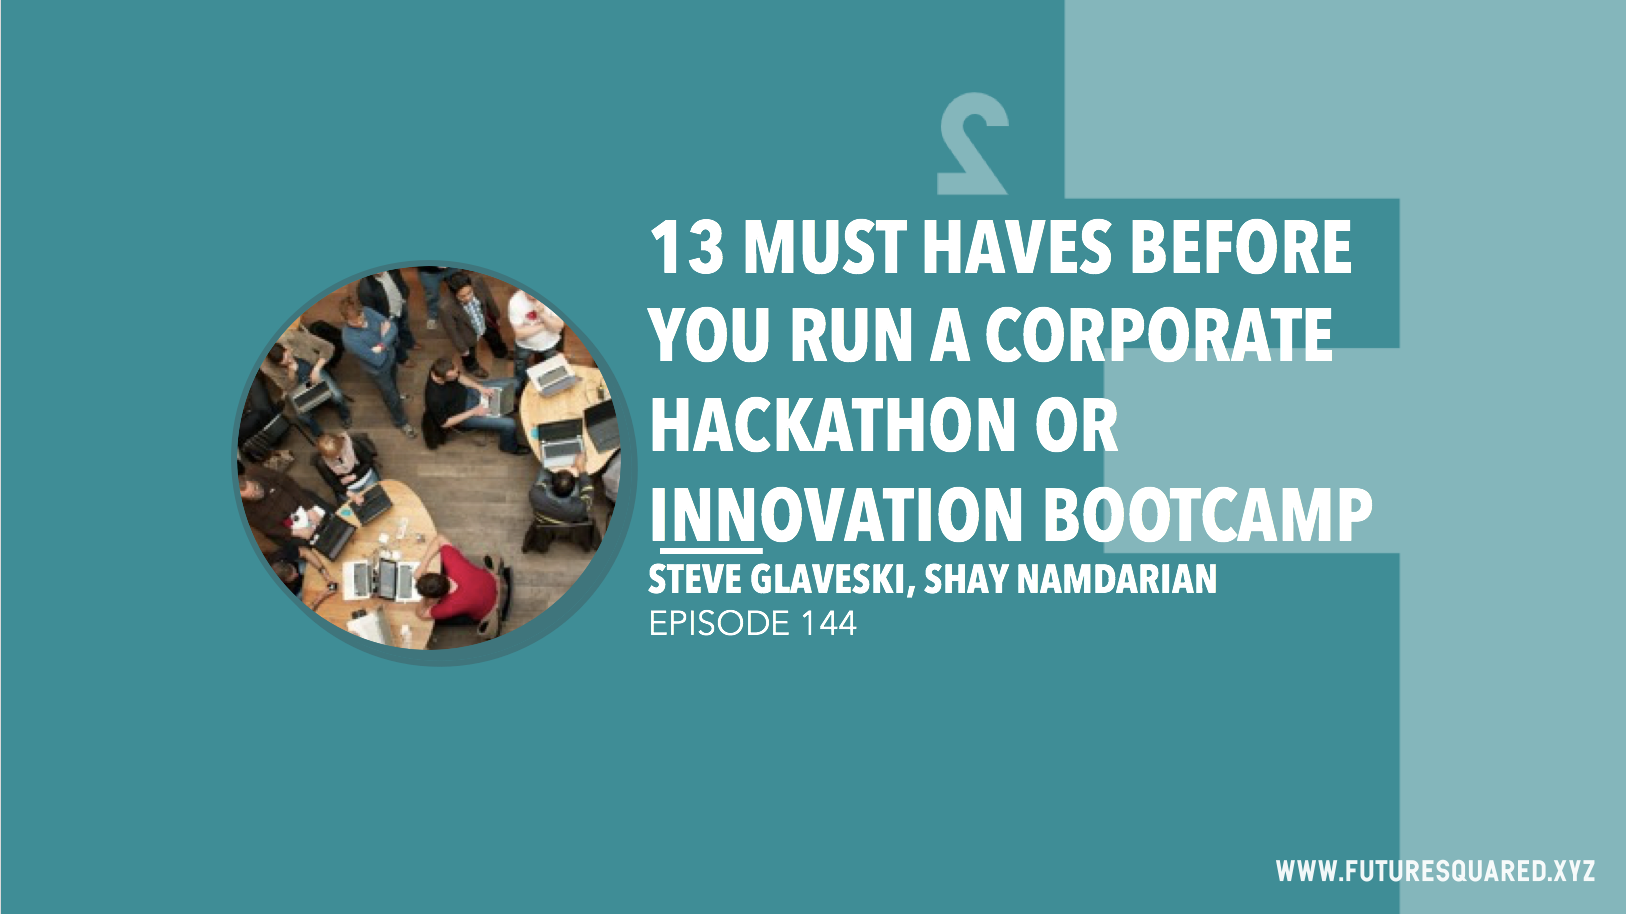 Future Squared Episode #144: 13 Must Haves BEFORE You Run a Corporate Hackathon or Innovation Bootcamp